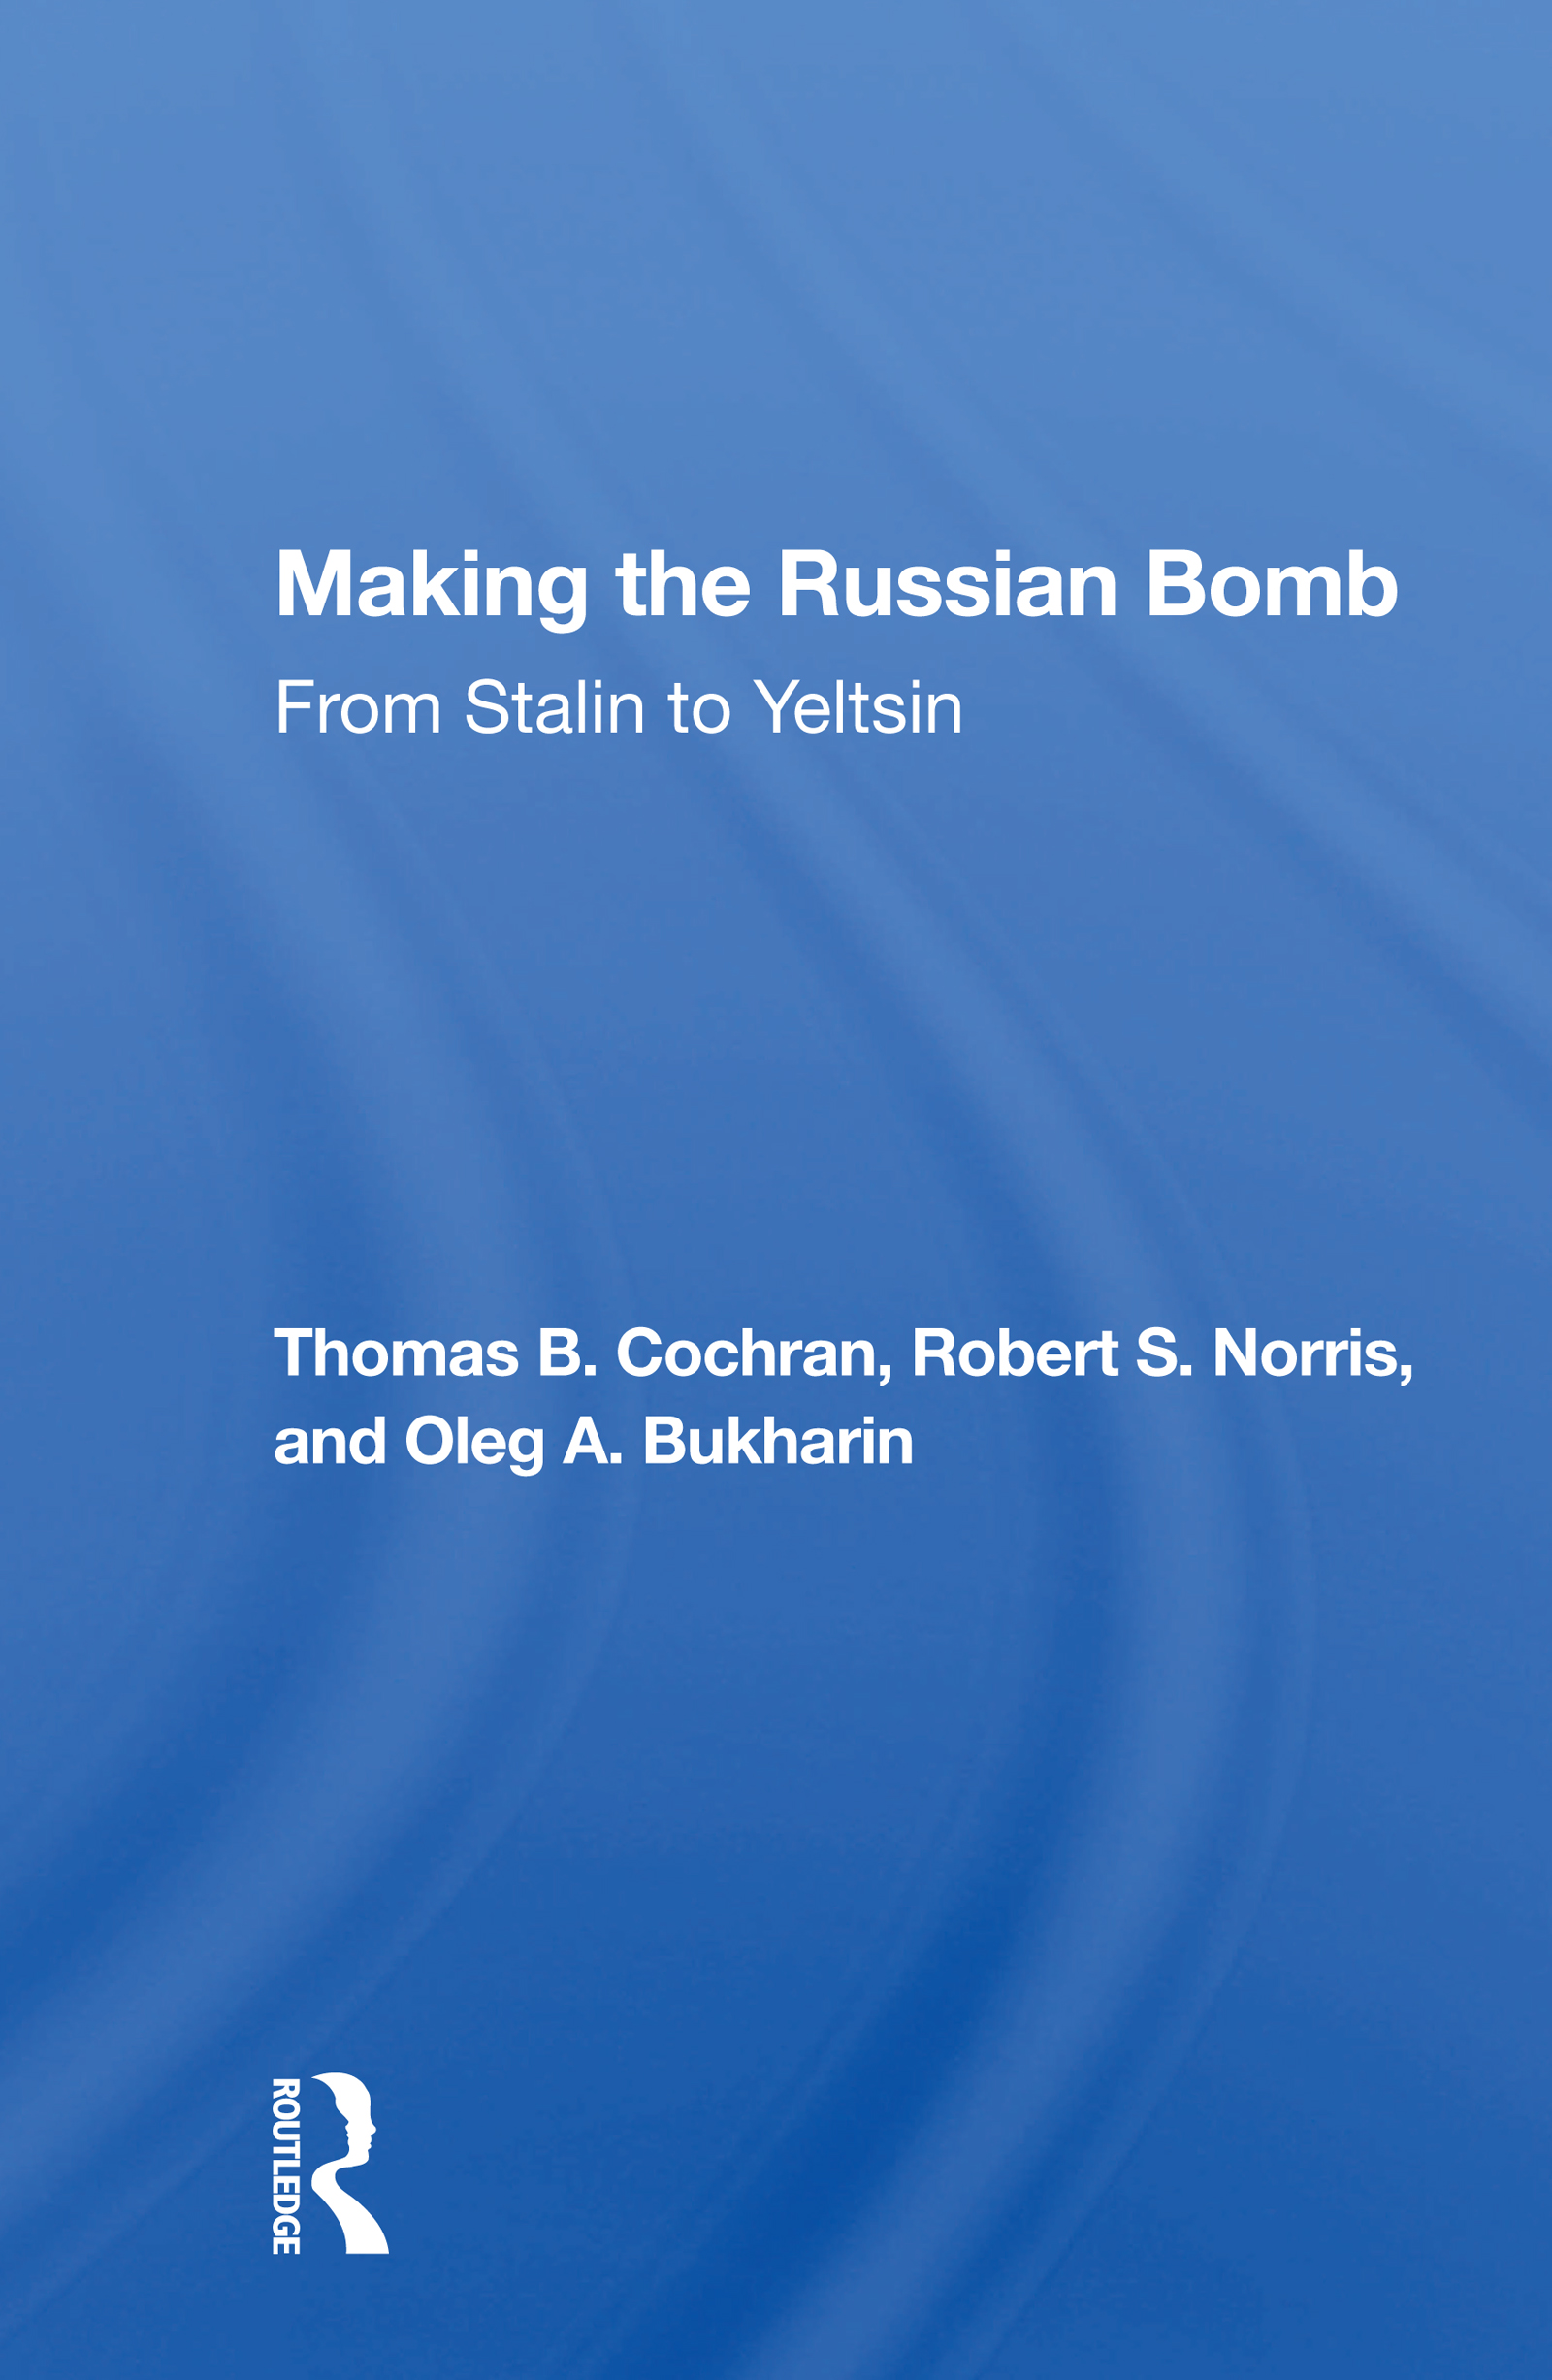 Making the Russian Bomb